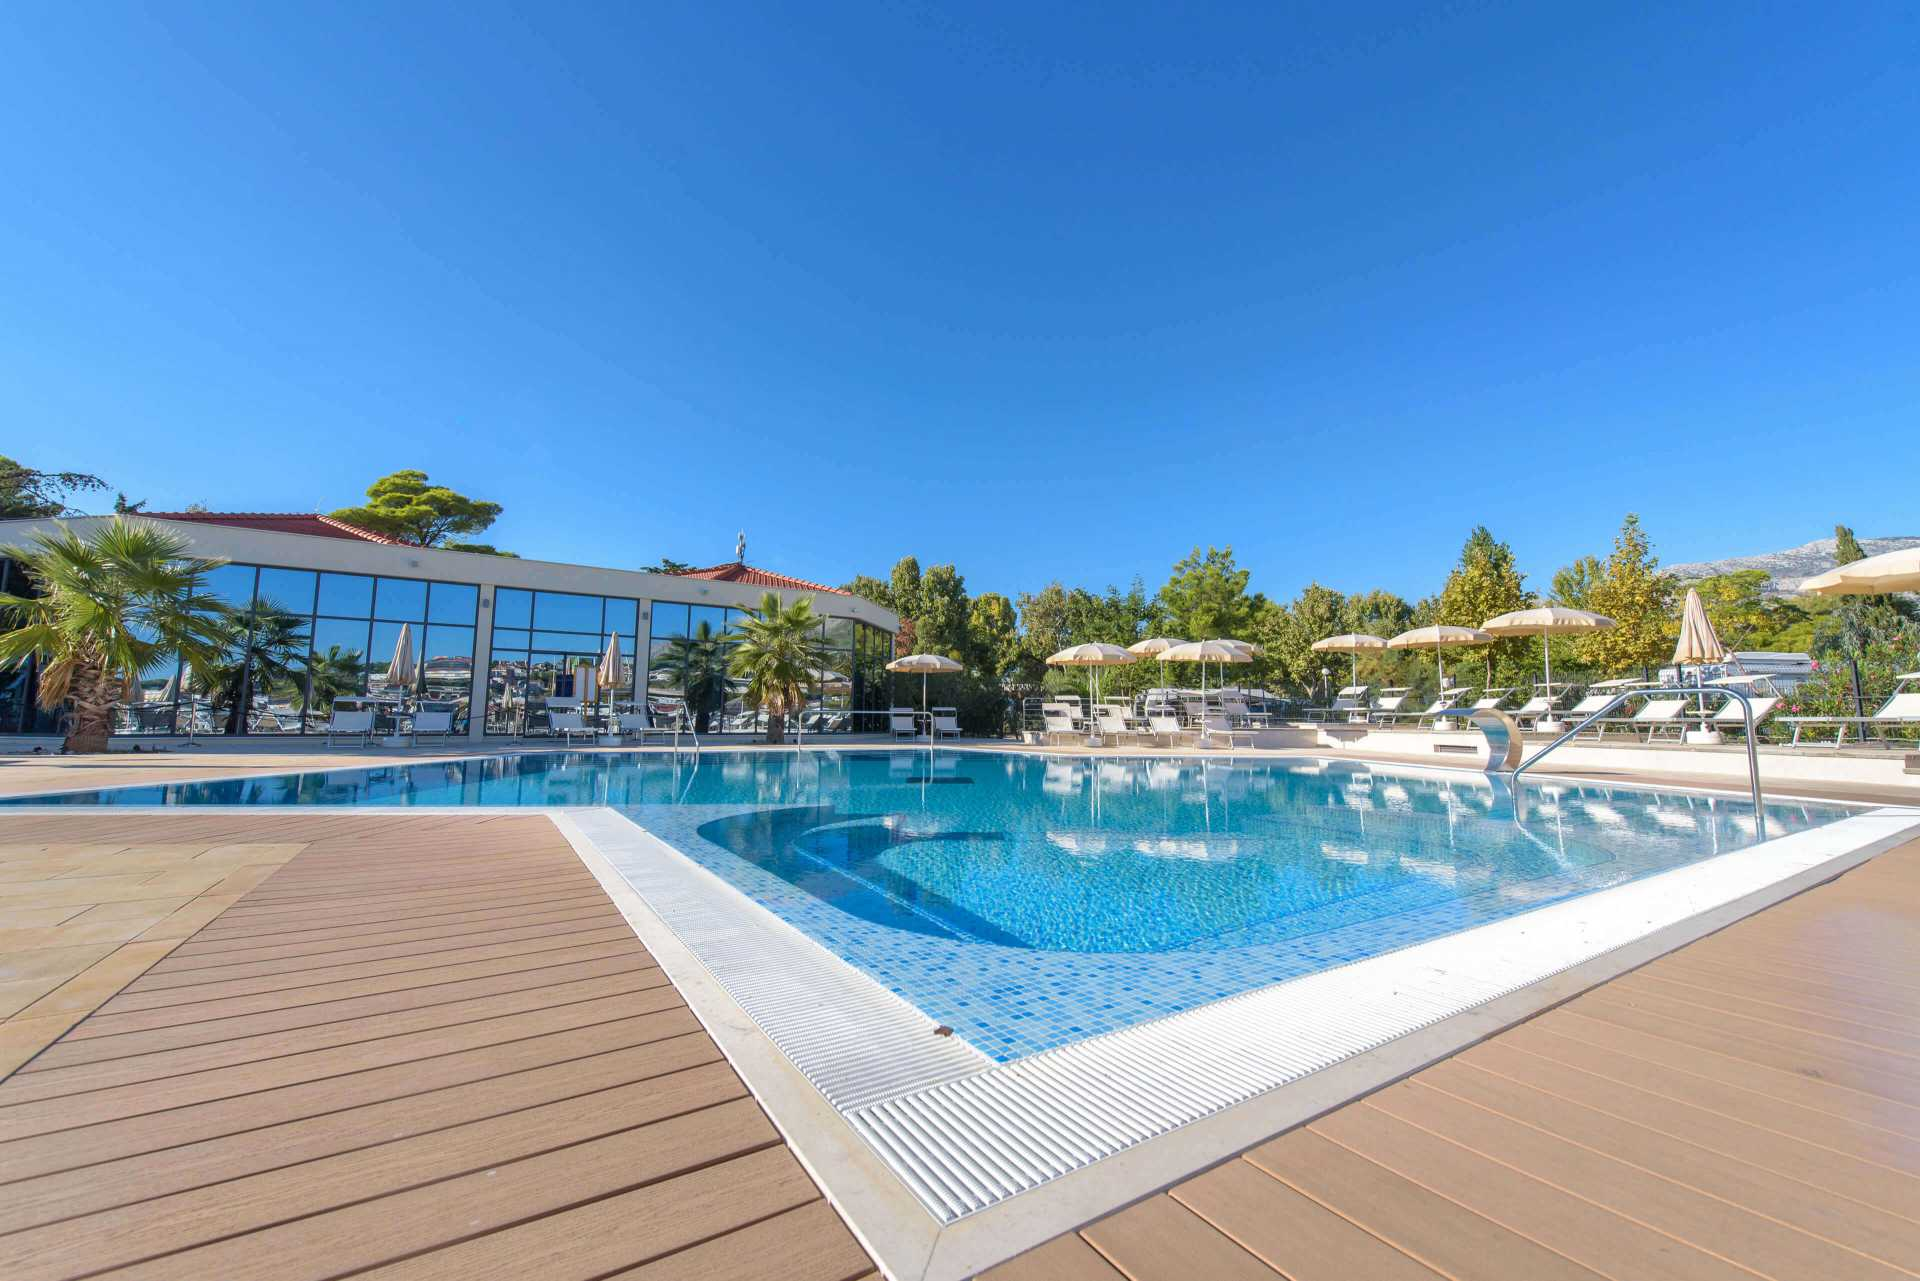 Wellness & Spa & Pools in Camping Split